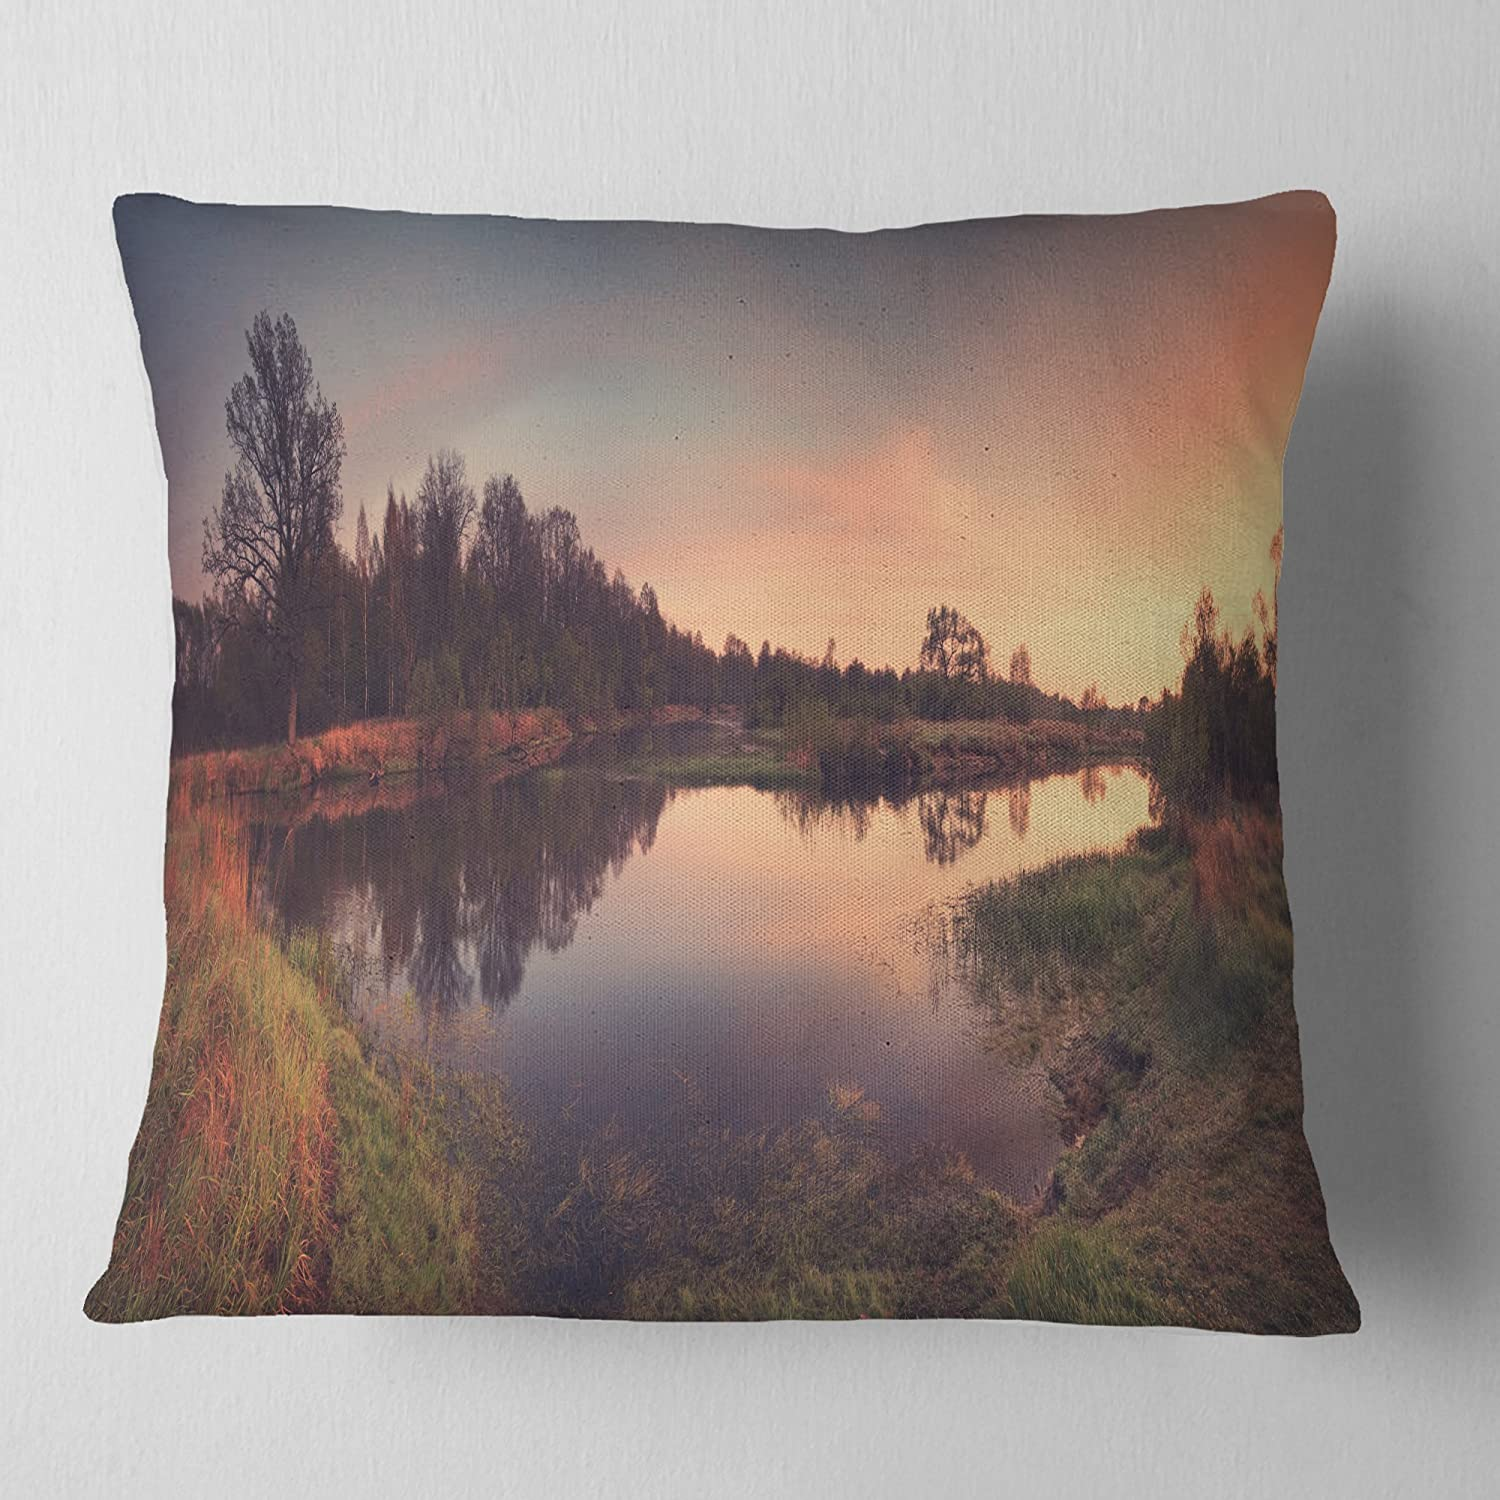 Designart CU11678-16-16 Yellow Tinged Spring Mountains Landscape Printed Throw Cushion Pillow Cover for Living Room 16 in x 16 in Cushion Cover Printed on Both Side Pillow Insert Sofa